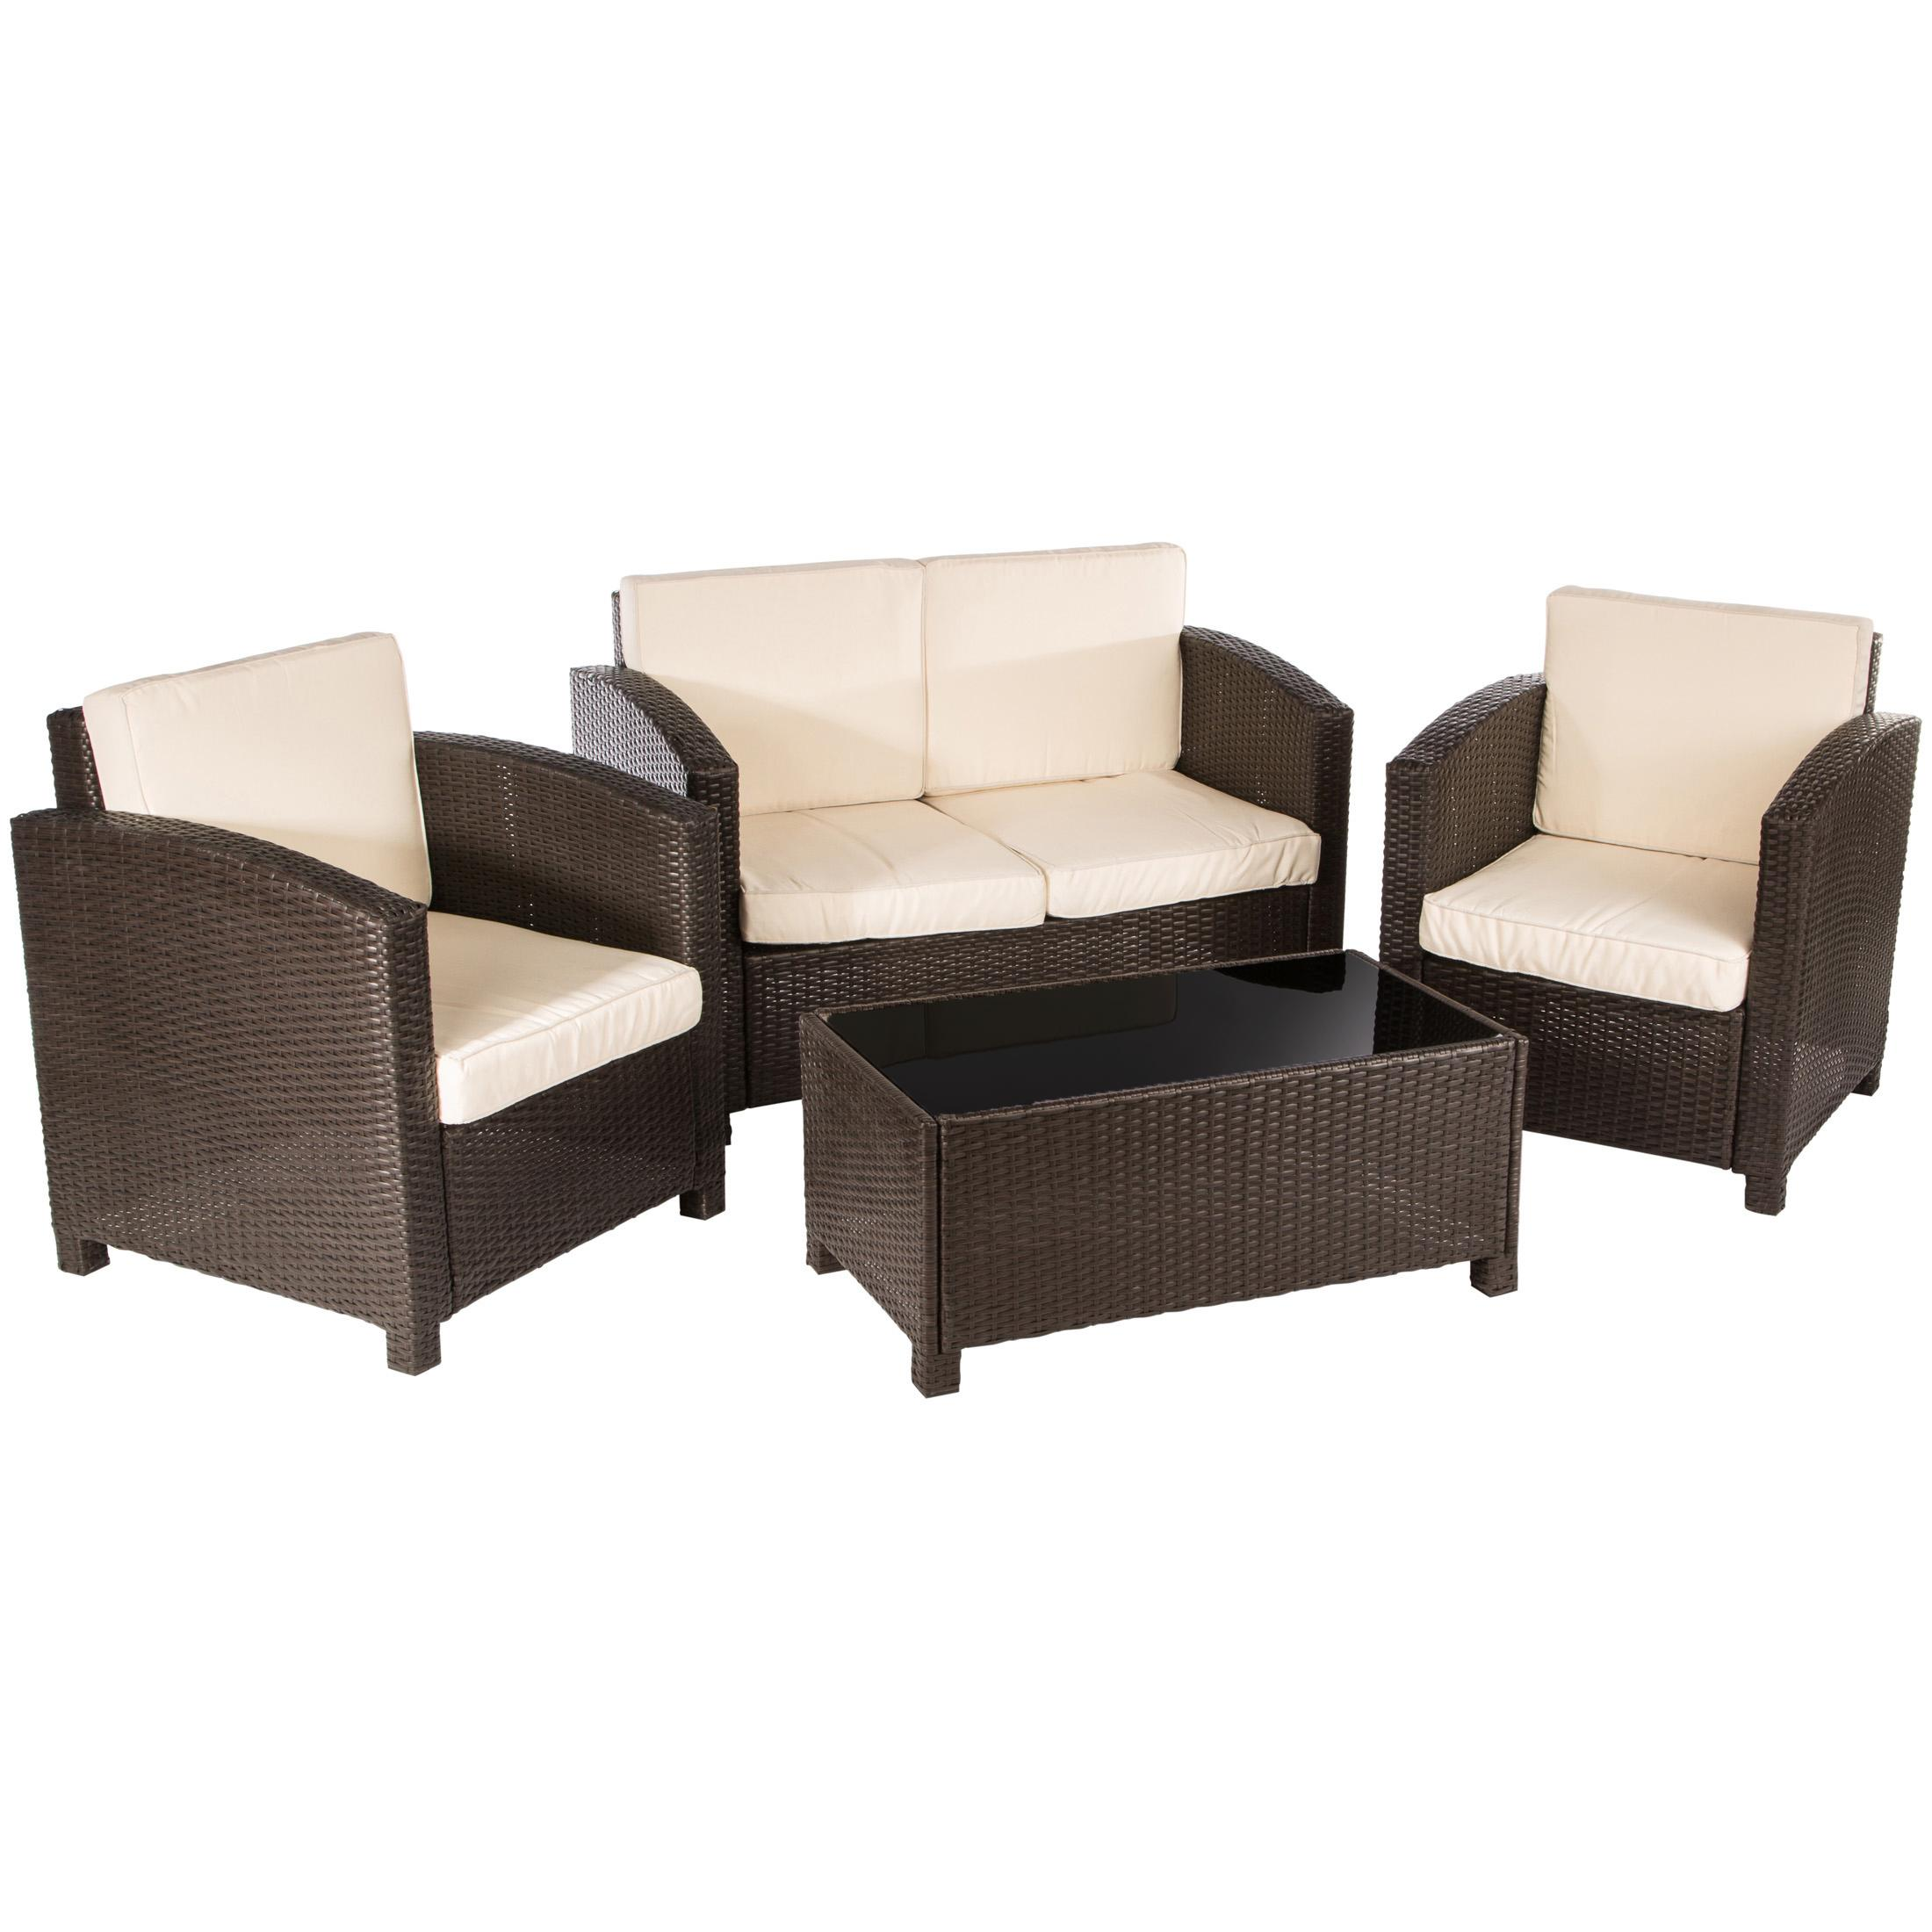 Ultranatura poly rattan lounge sitzgruppe for Tisch couch